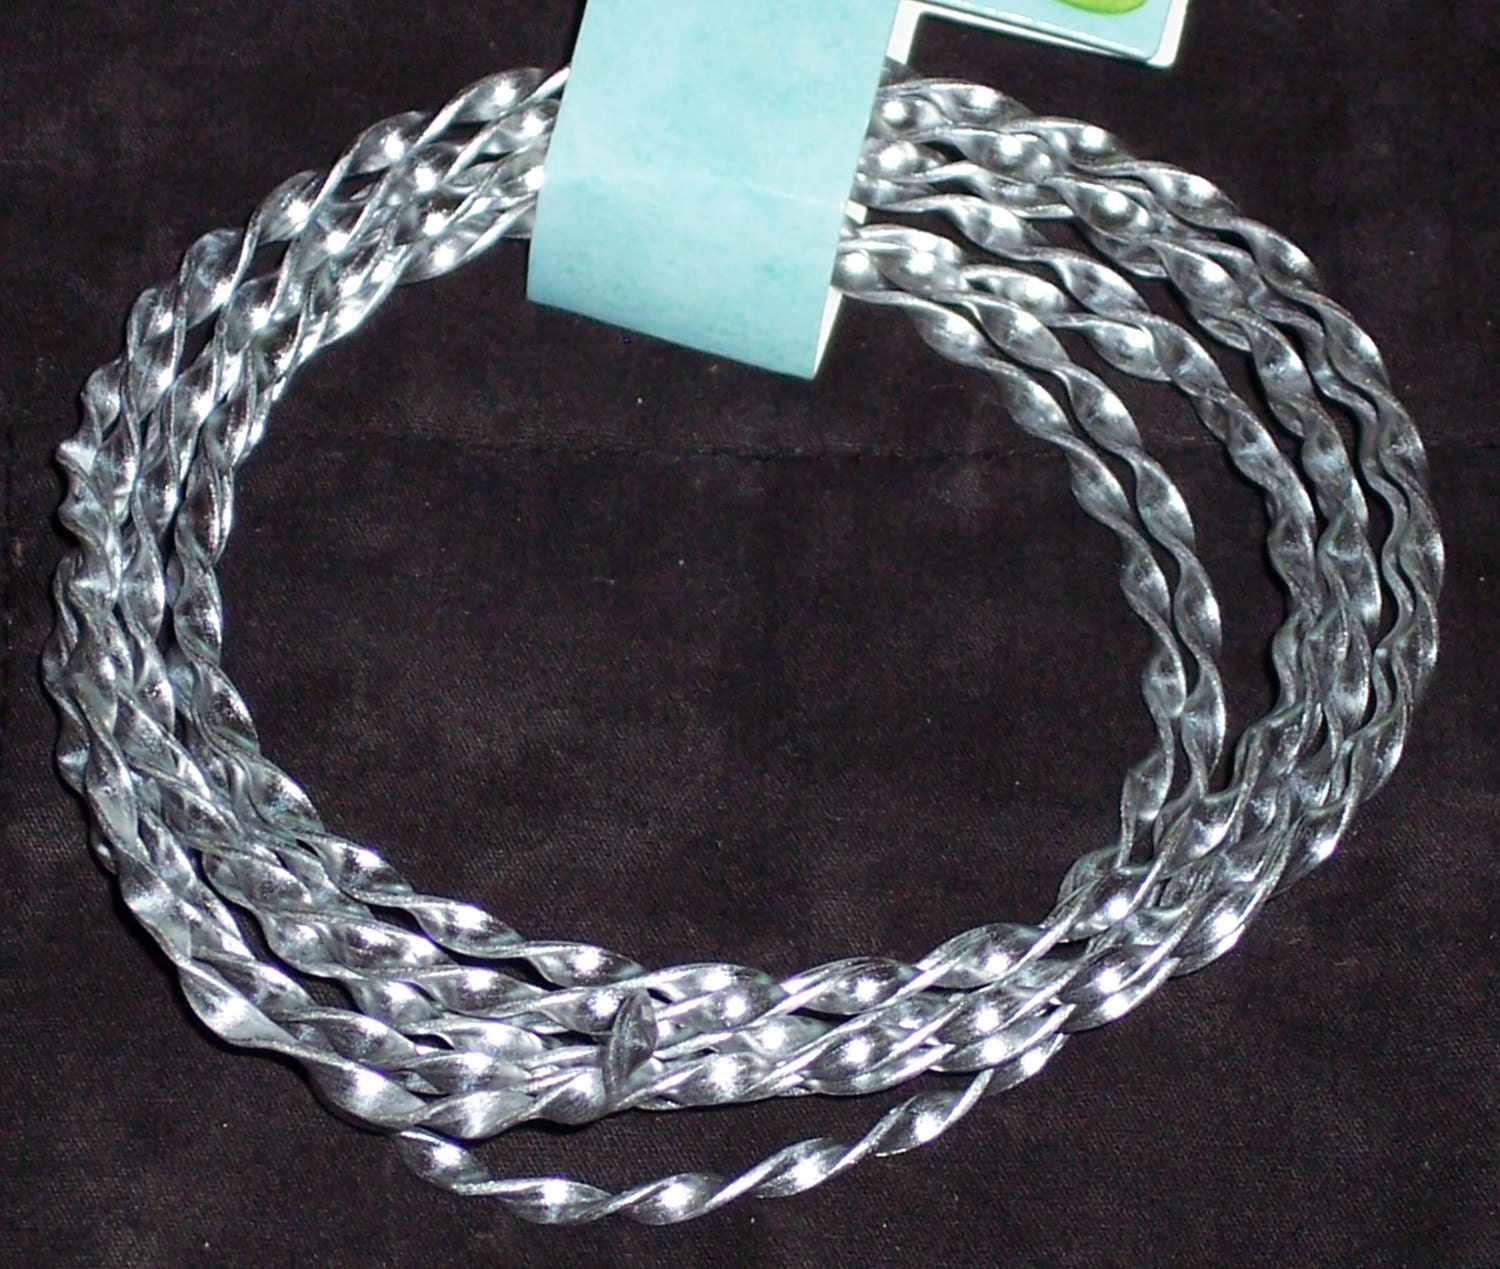 Twisted silver aluminum craft wire,3MM wide,7 feet,jewelry making ...